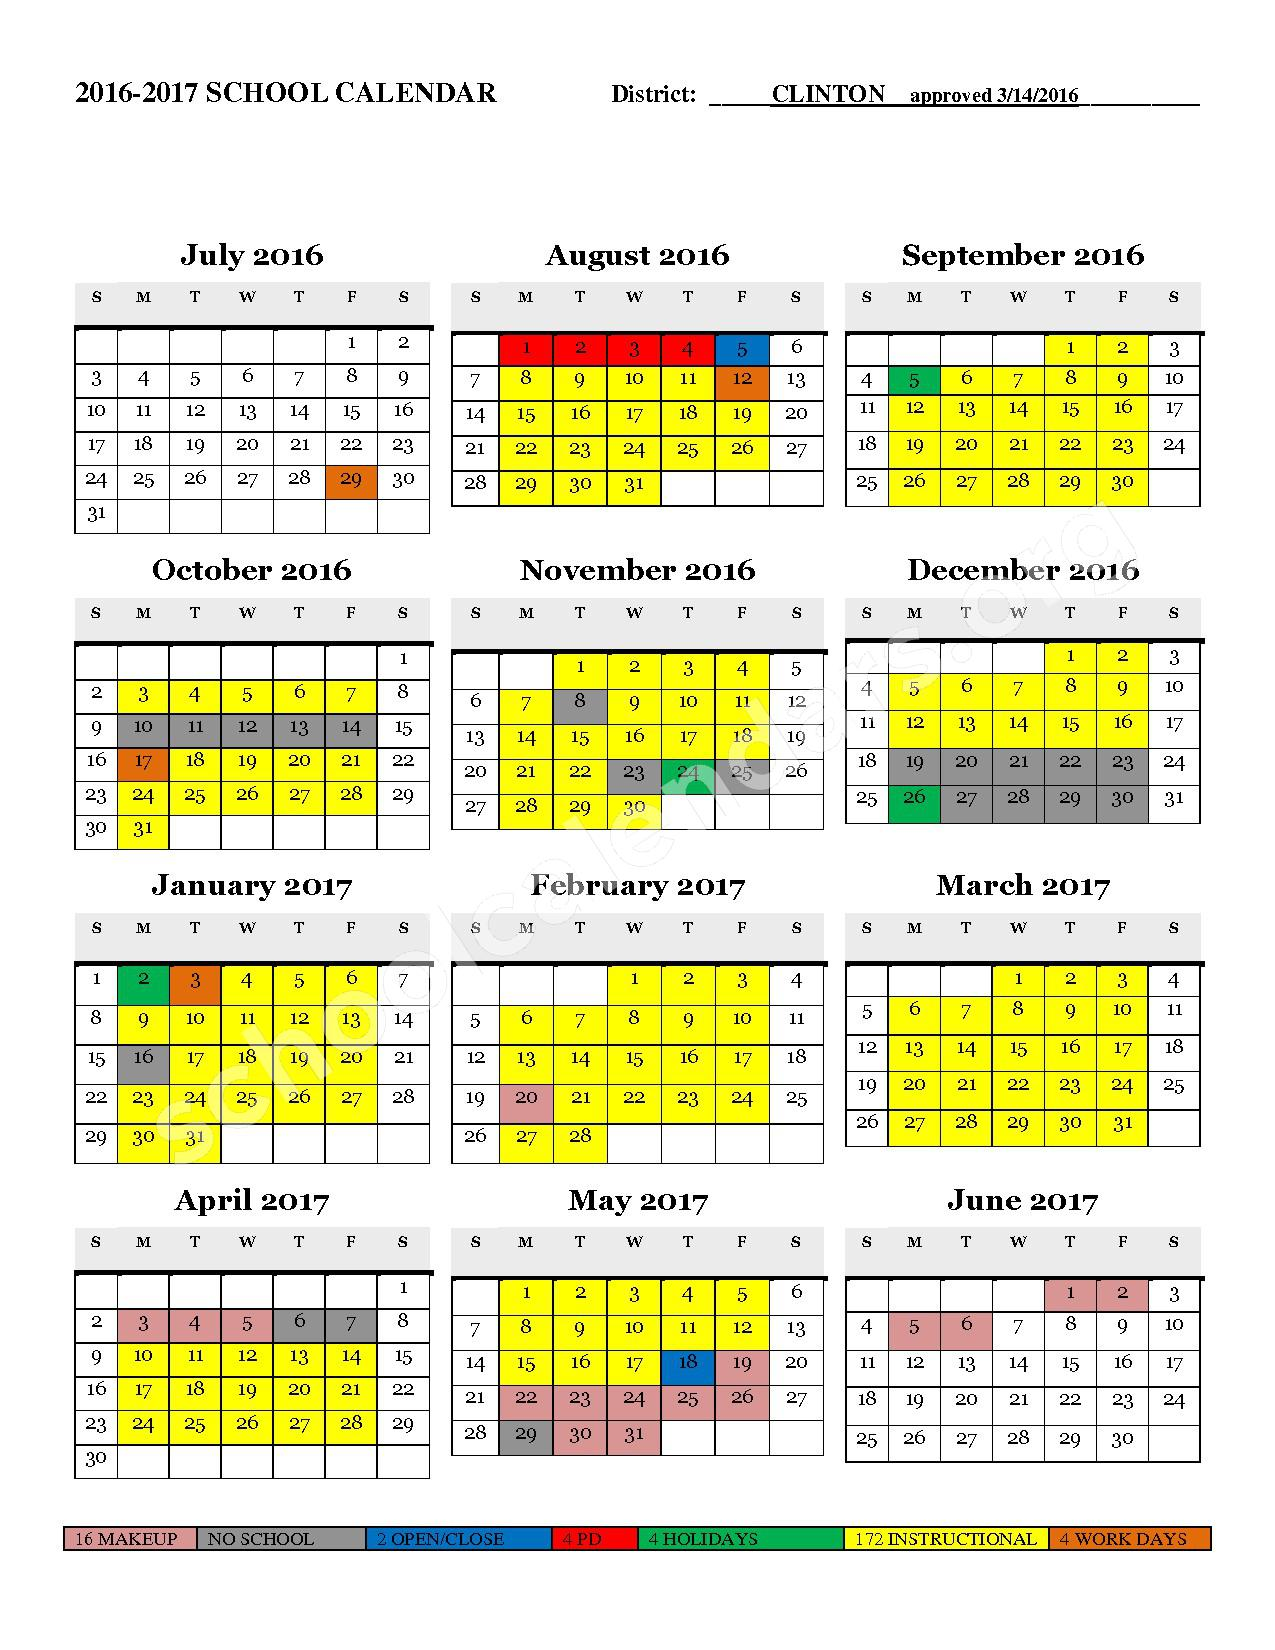 2016 - 2017 District Calendar – Clinton County School District – page 1